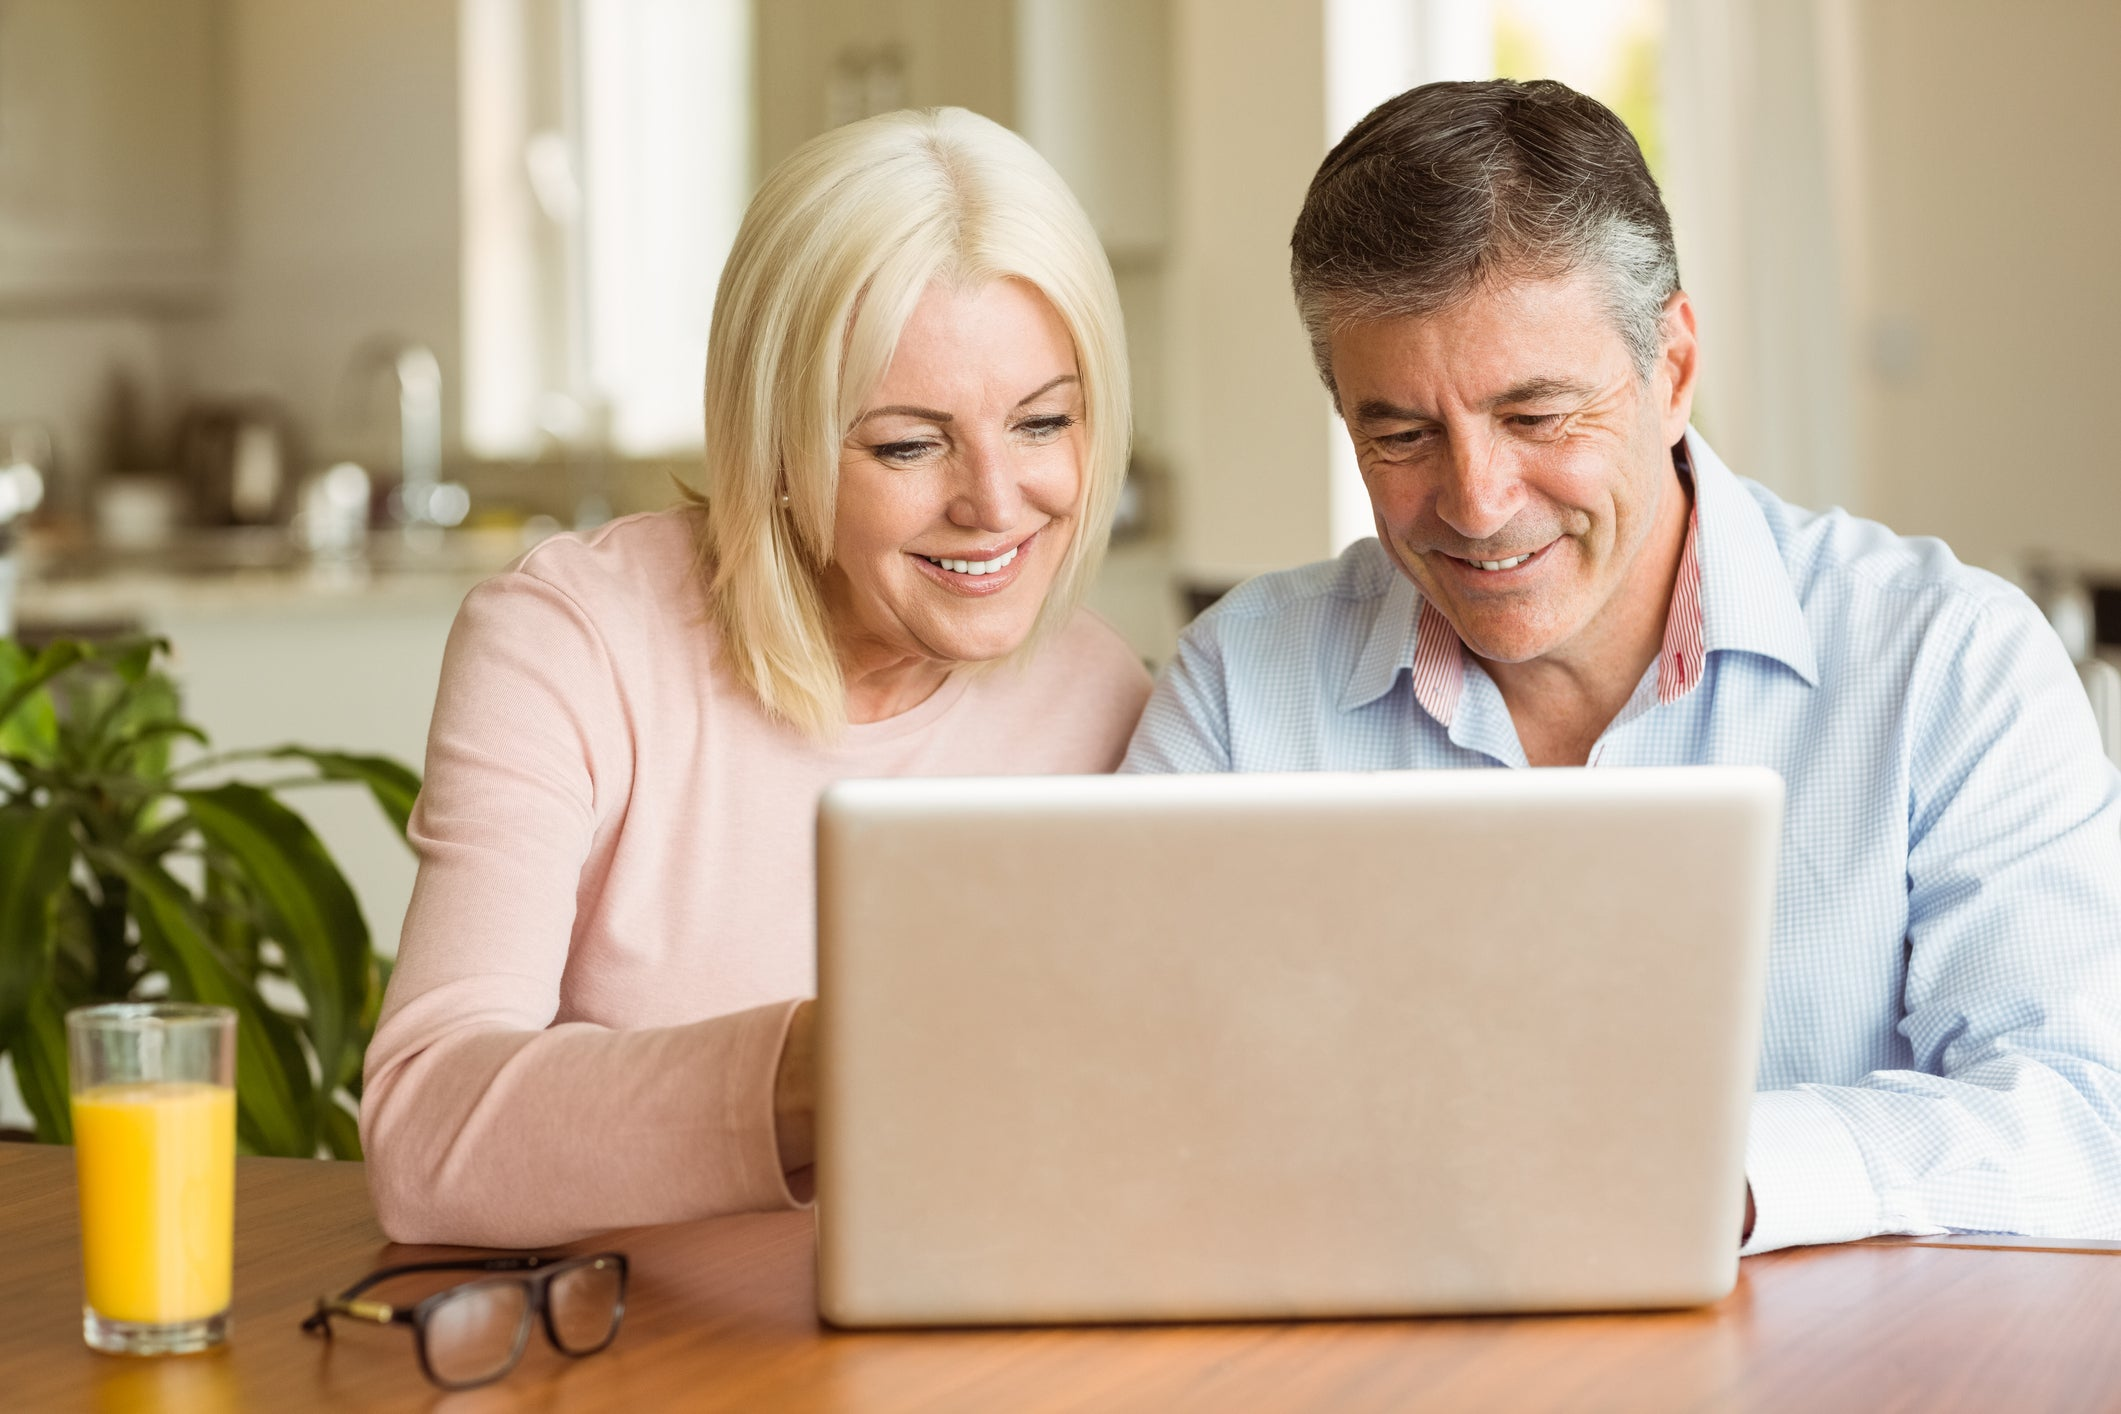 So You've Saved $1 Million for Retirement. Now What?